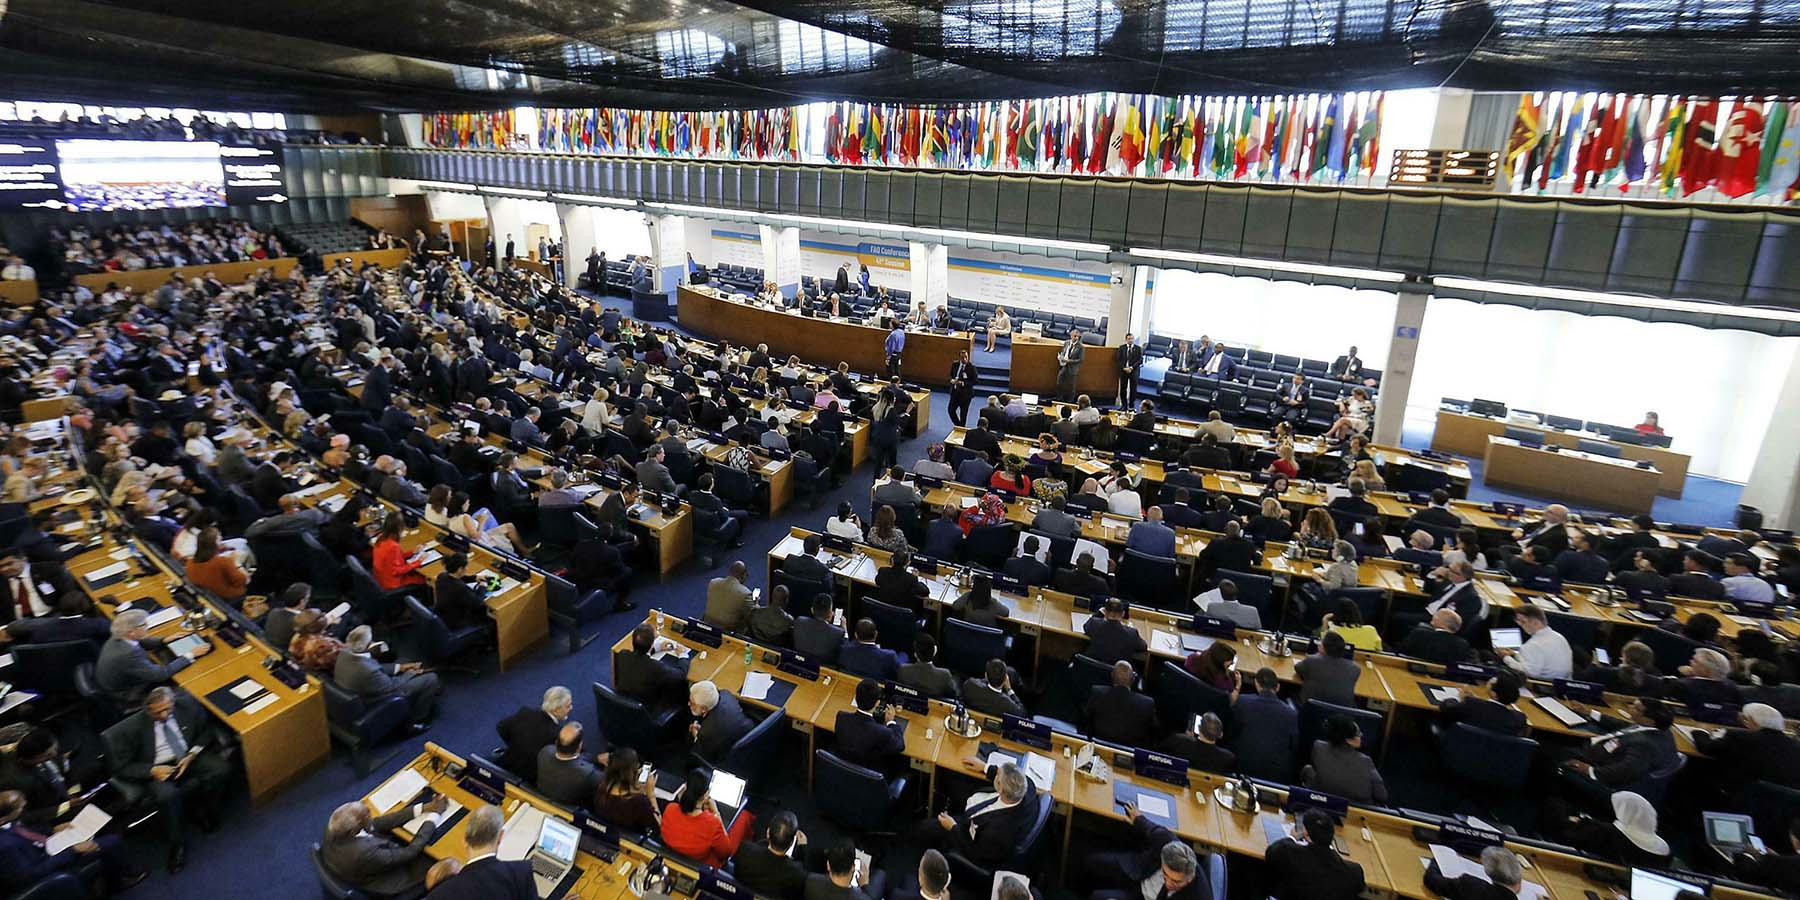 Delegates sit at the FAO headquarters during the vote for diretor general of the U.N. organization in Rome on June 23.